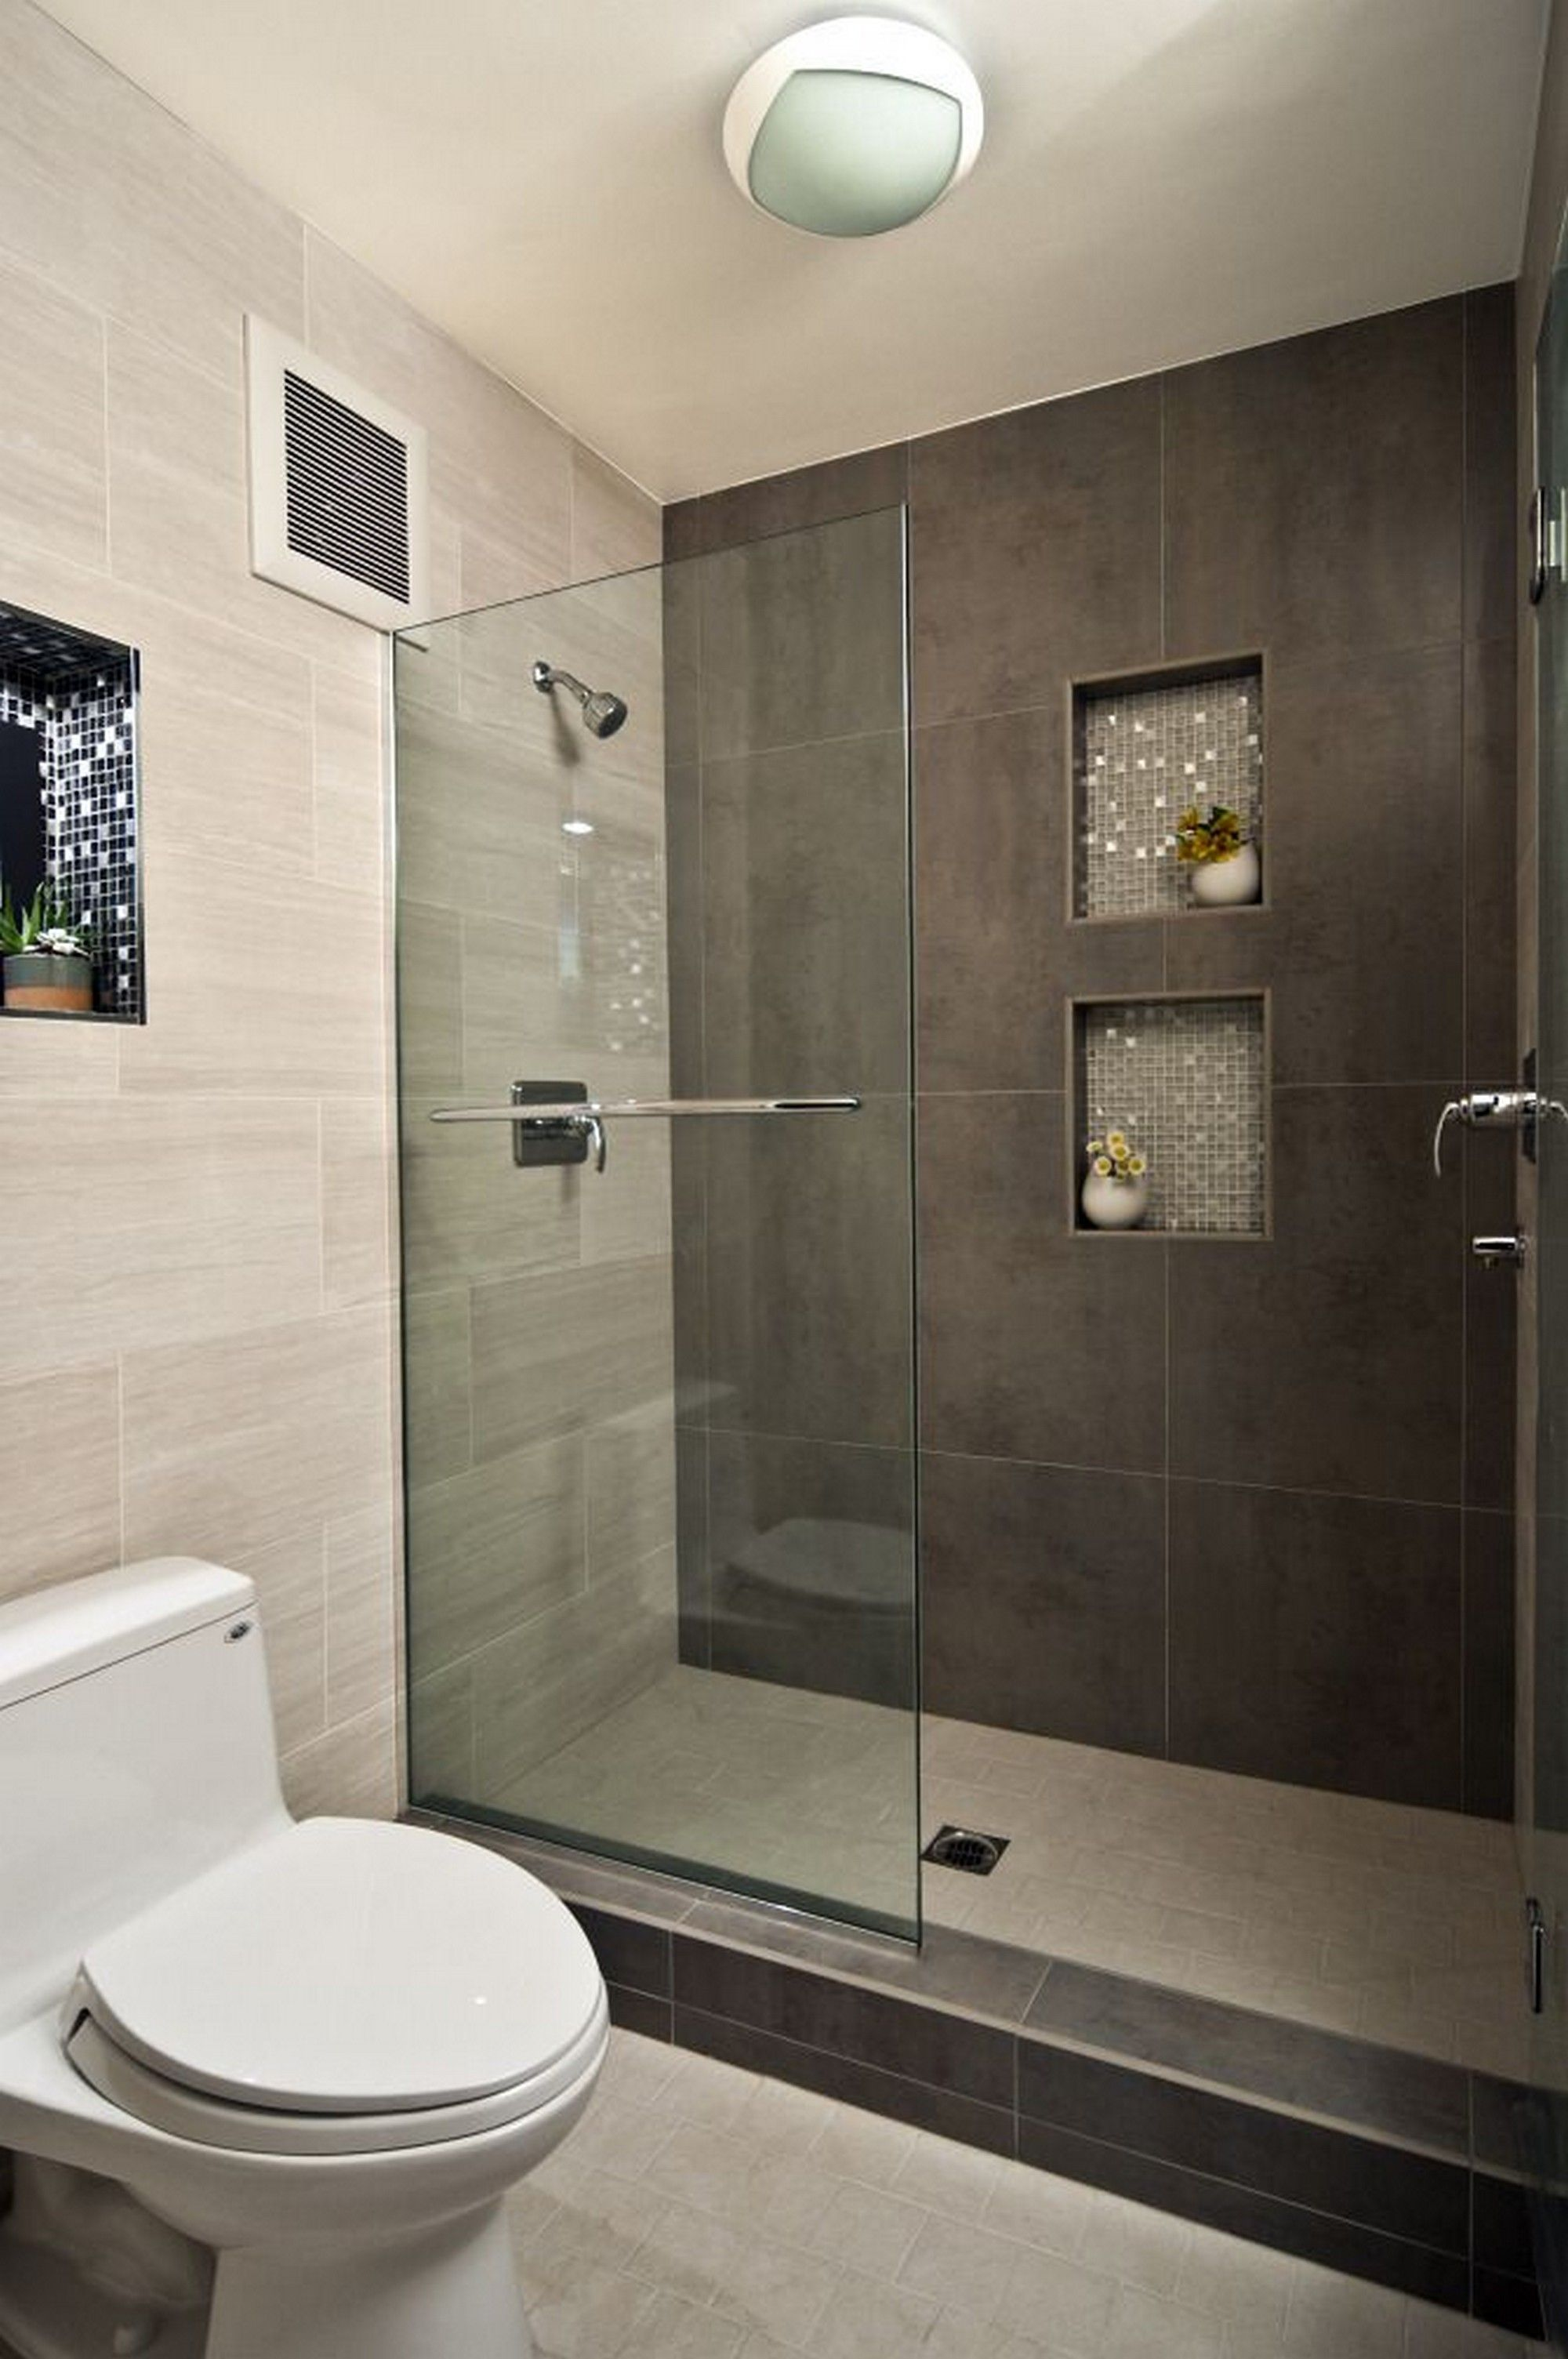 Modern bathroom design ideas with walk in shower small for Small lavatory designs